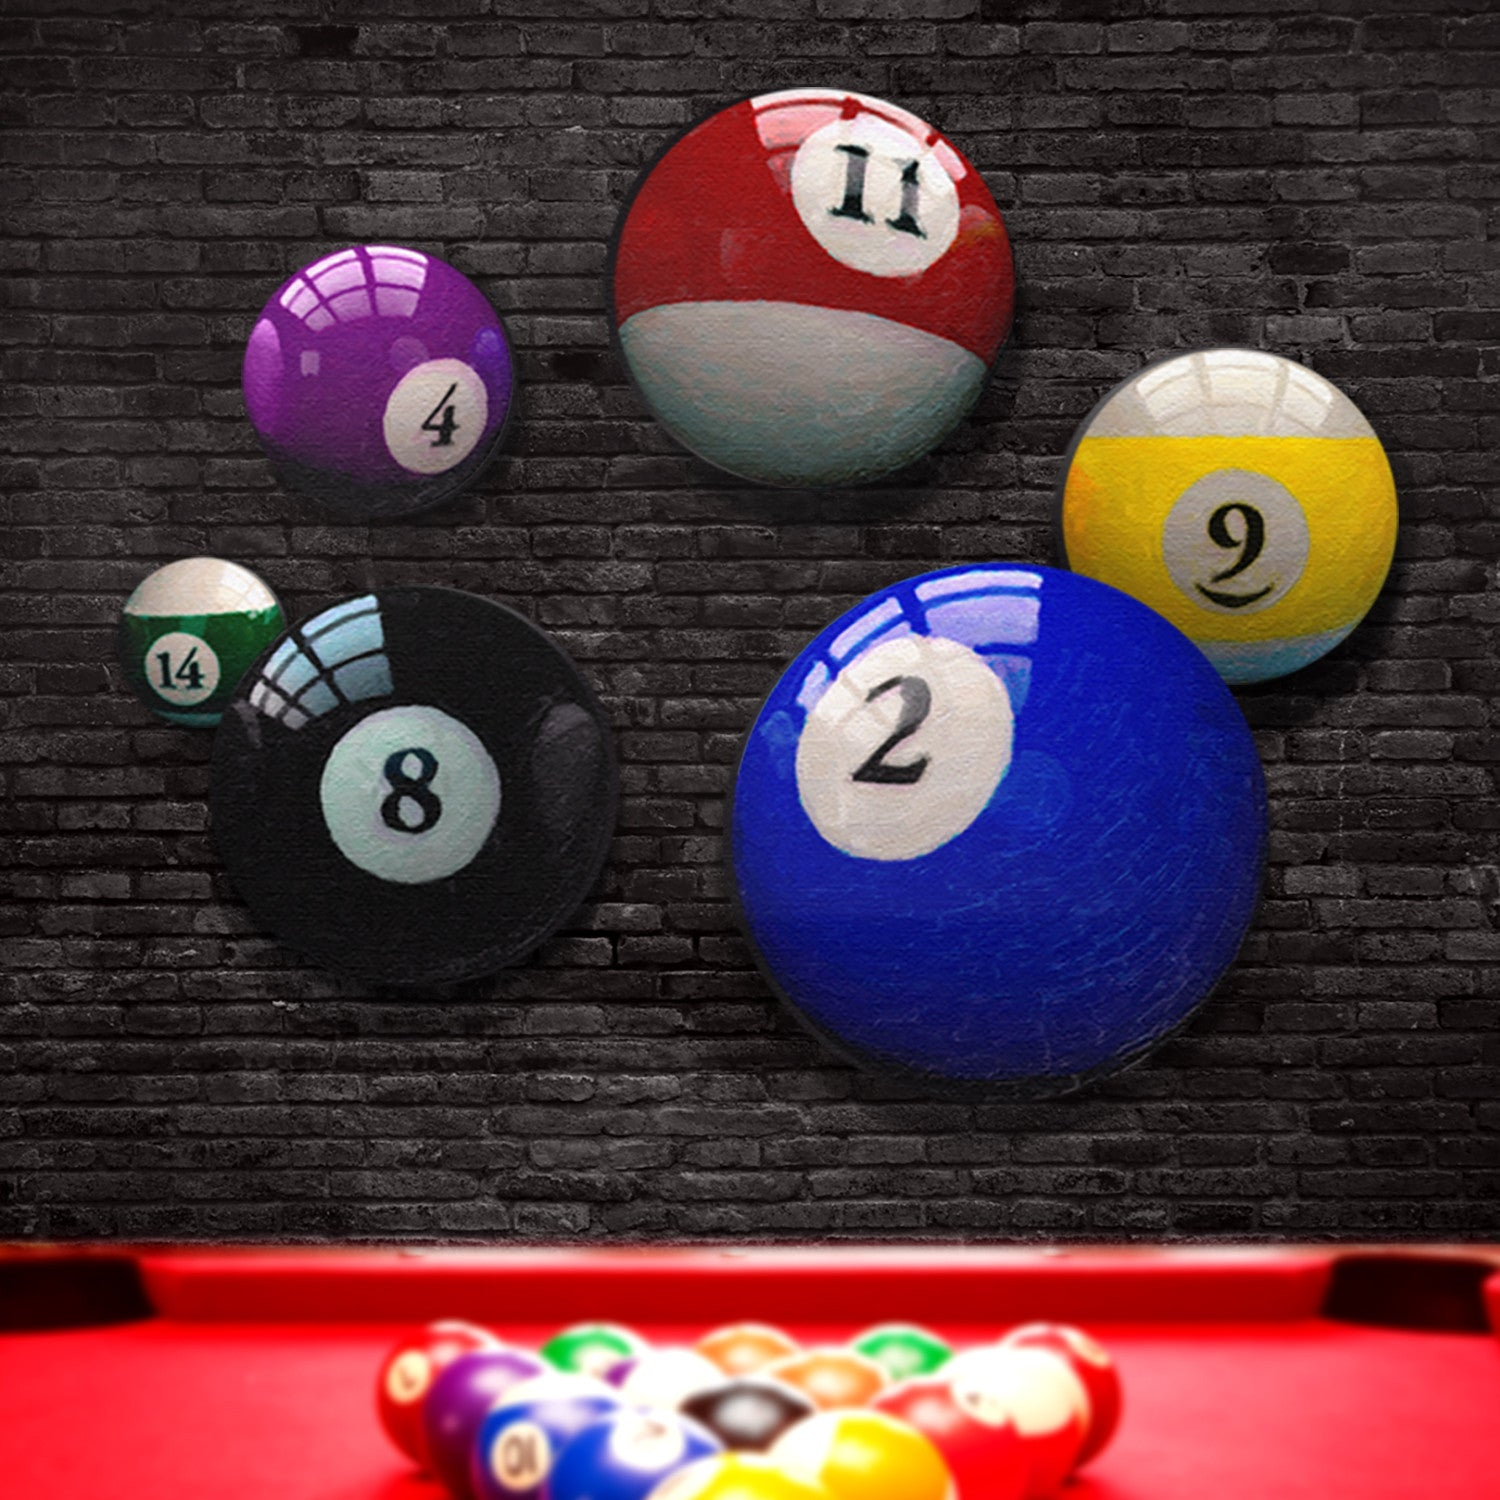 Pool ball prints on individual round art canvases for man cave pool ball prints behind billiards table in rec room decor amipublicfo Images